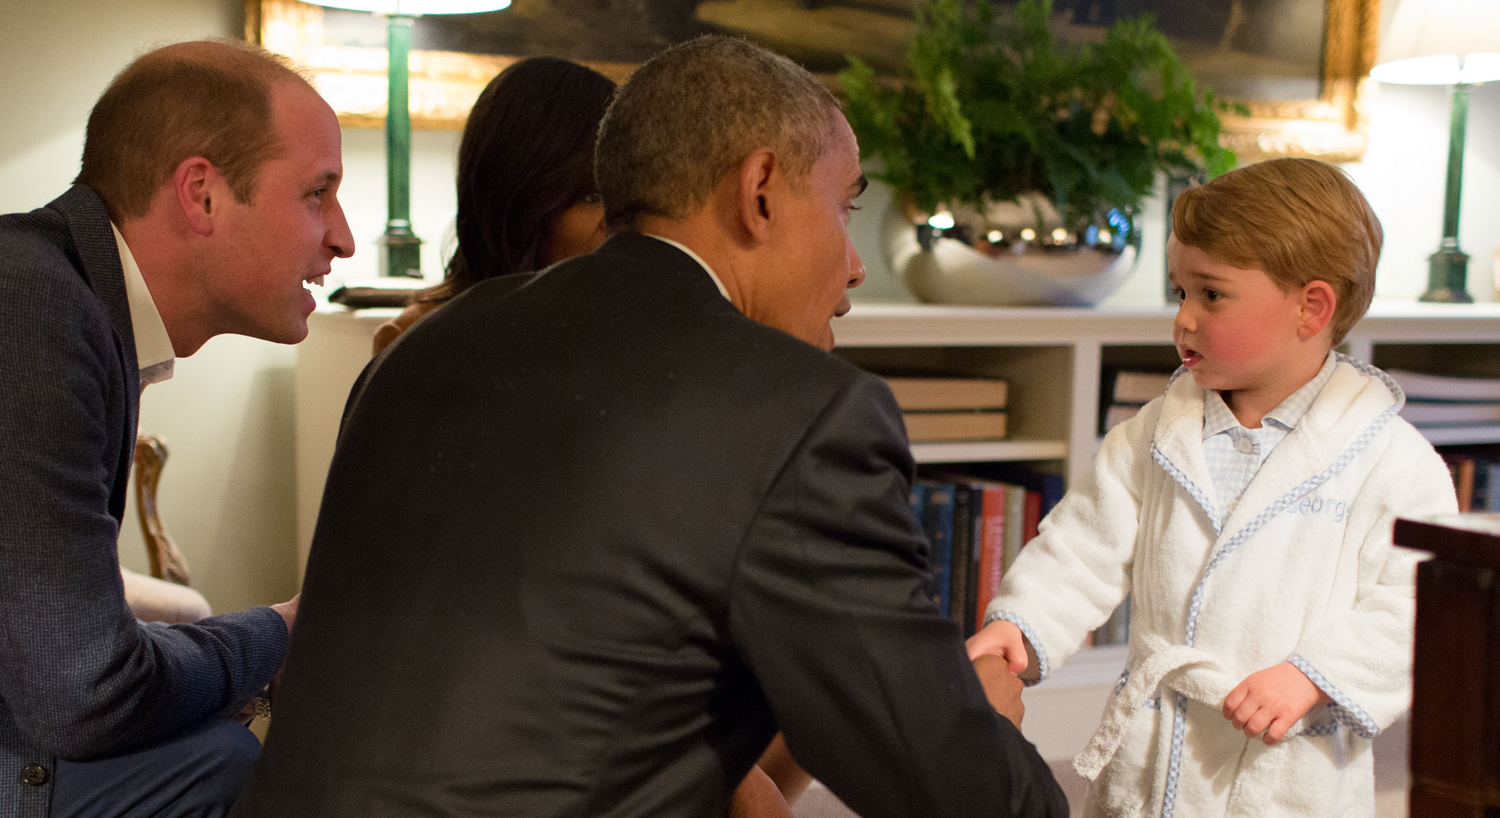 This photo conquered the world: Prince George took Obama in his pajamas and robe